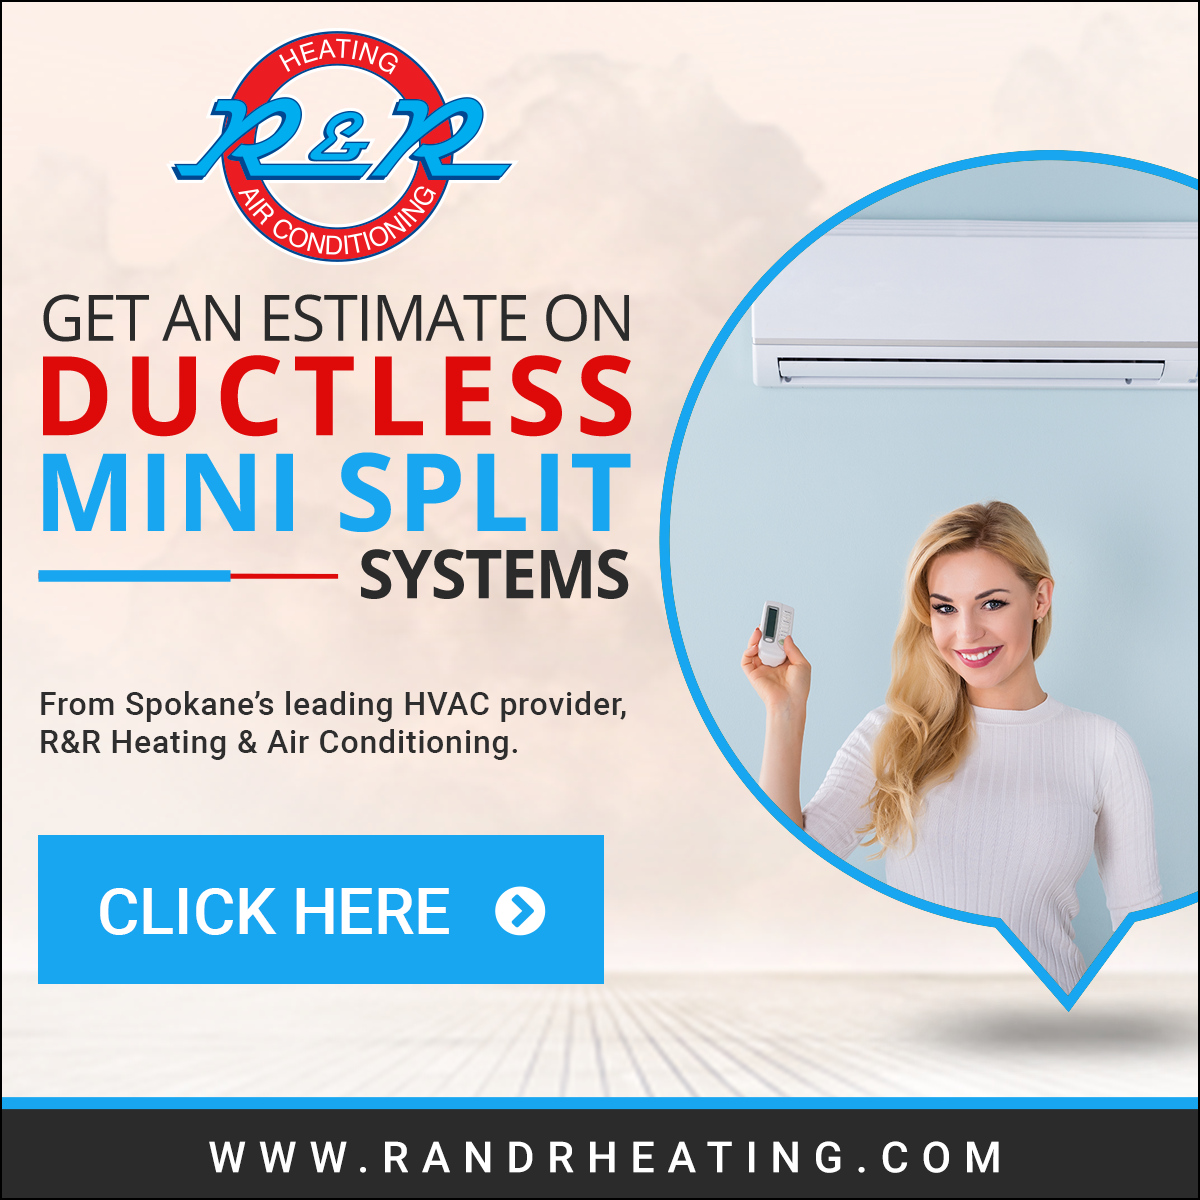 Get Setup With Ductless Mini Splits In Your Home Call R R Heating Air Conditioning At 509 484 1405 Or Heating And Air Conditioning Air Heating Hvac Services